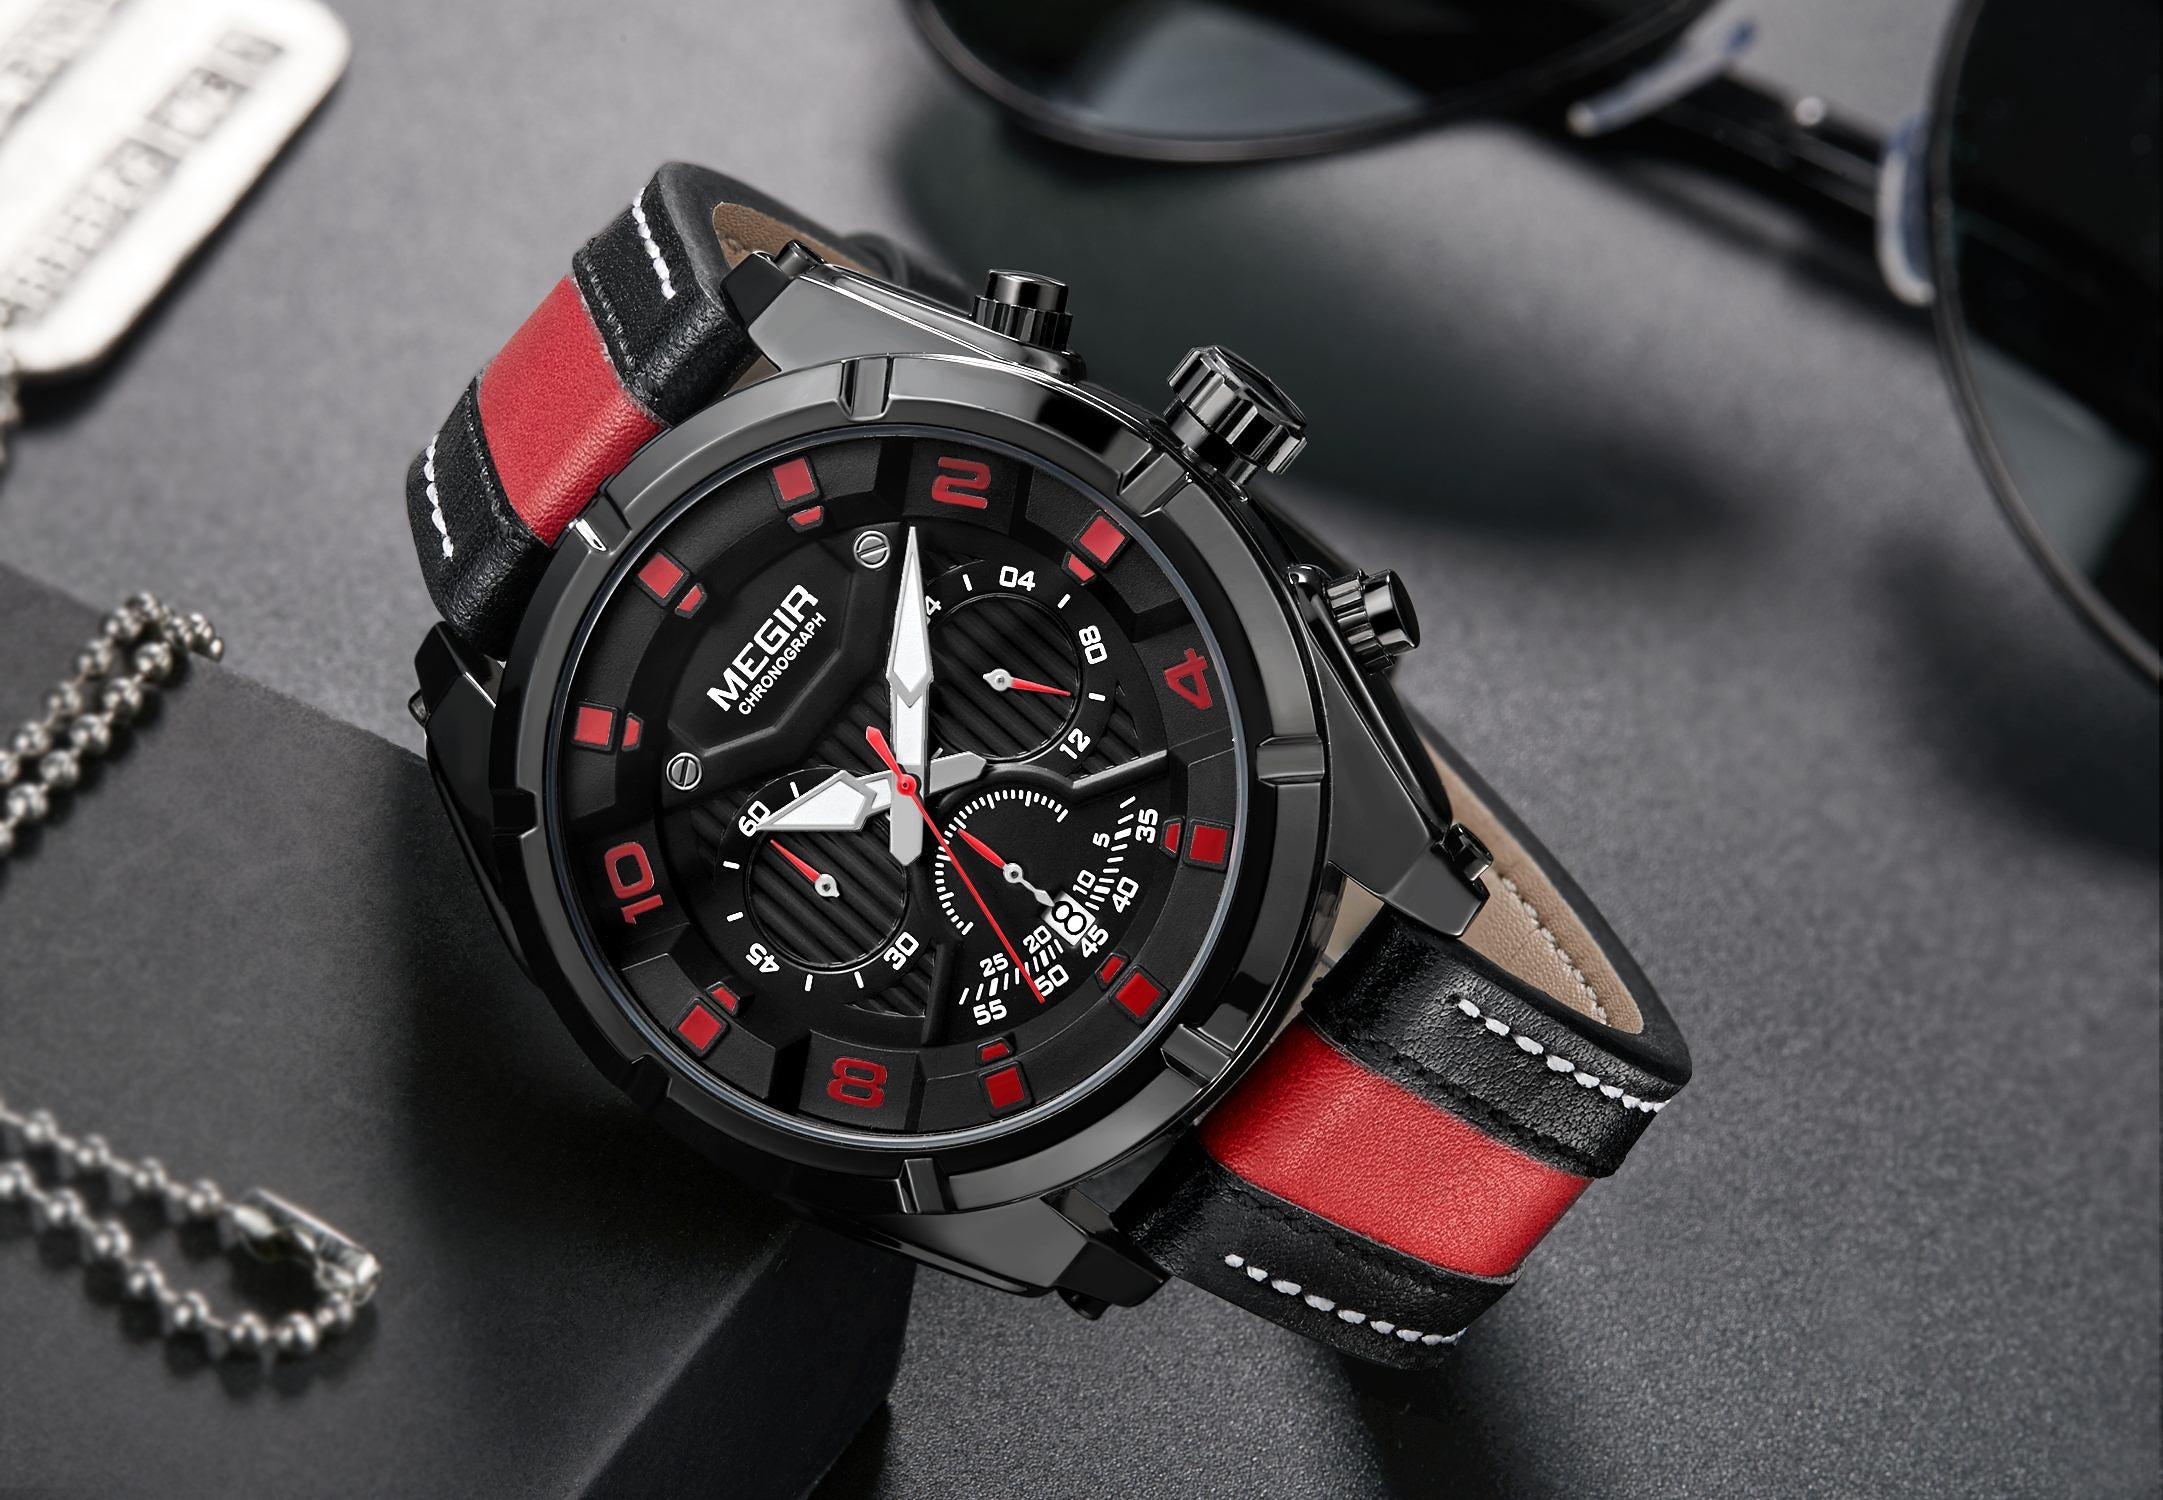 MEGIR sports watch chronograph 2076 - MEGIR